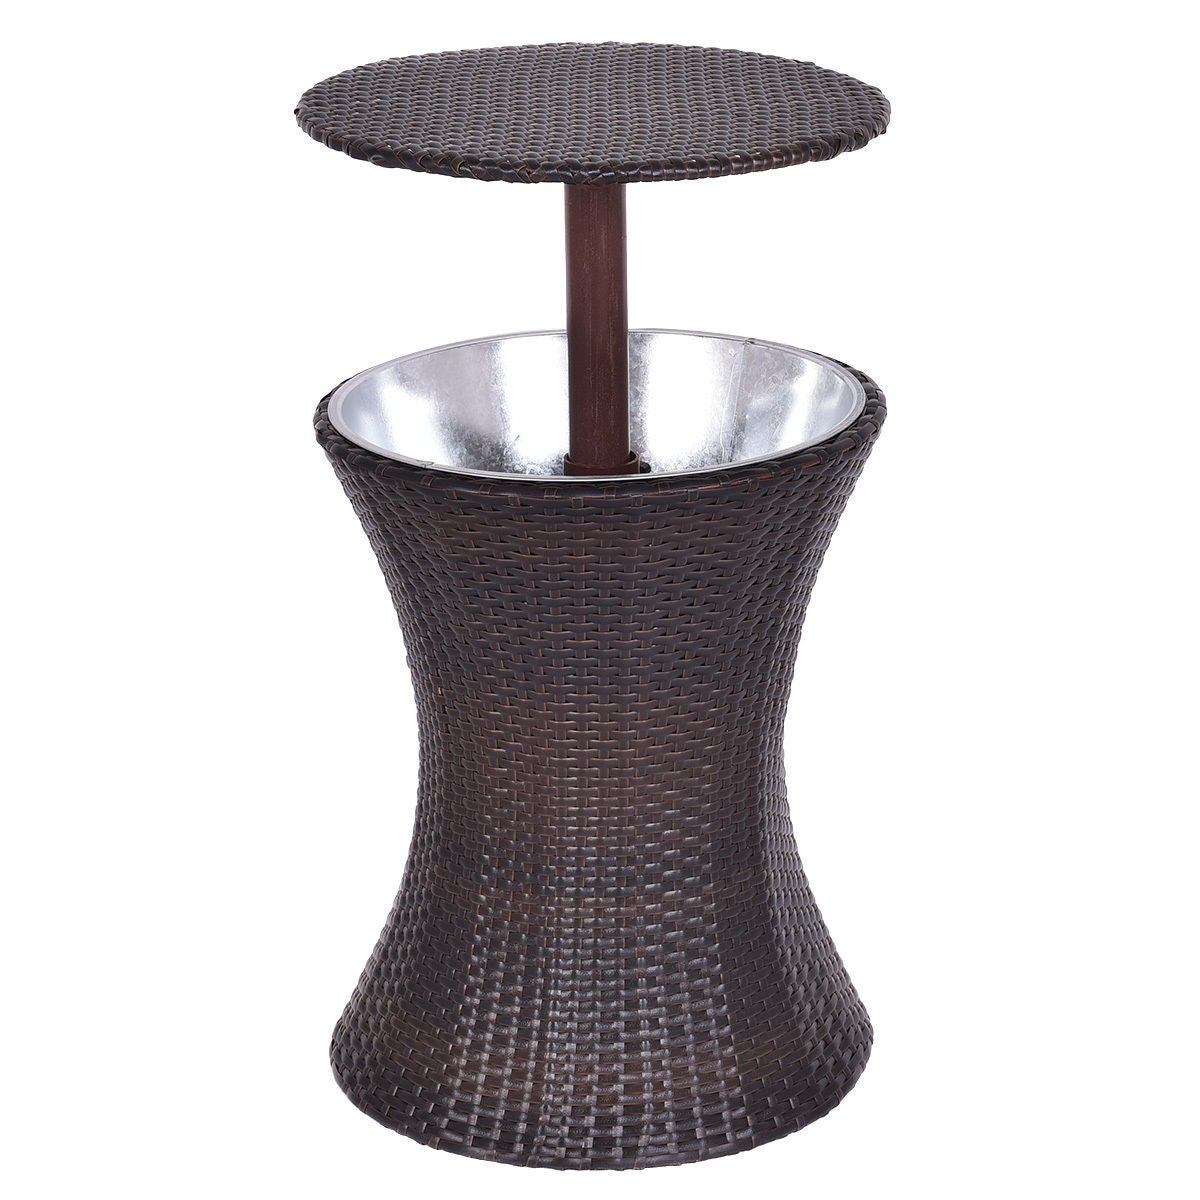 Charmant Shop Costway 1PC Adjustable Outdoor Patio Rattan Ice Cooler Cool Bar Table  Party Deck Pool   Brown   Free Shipping Today   Overstock.com   16689652